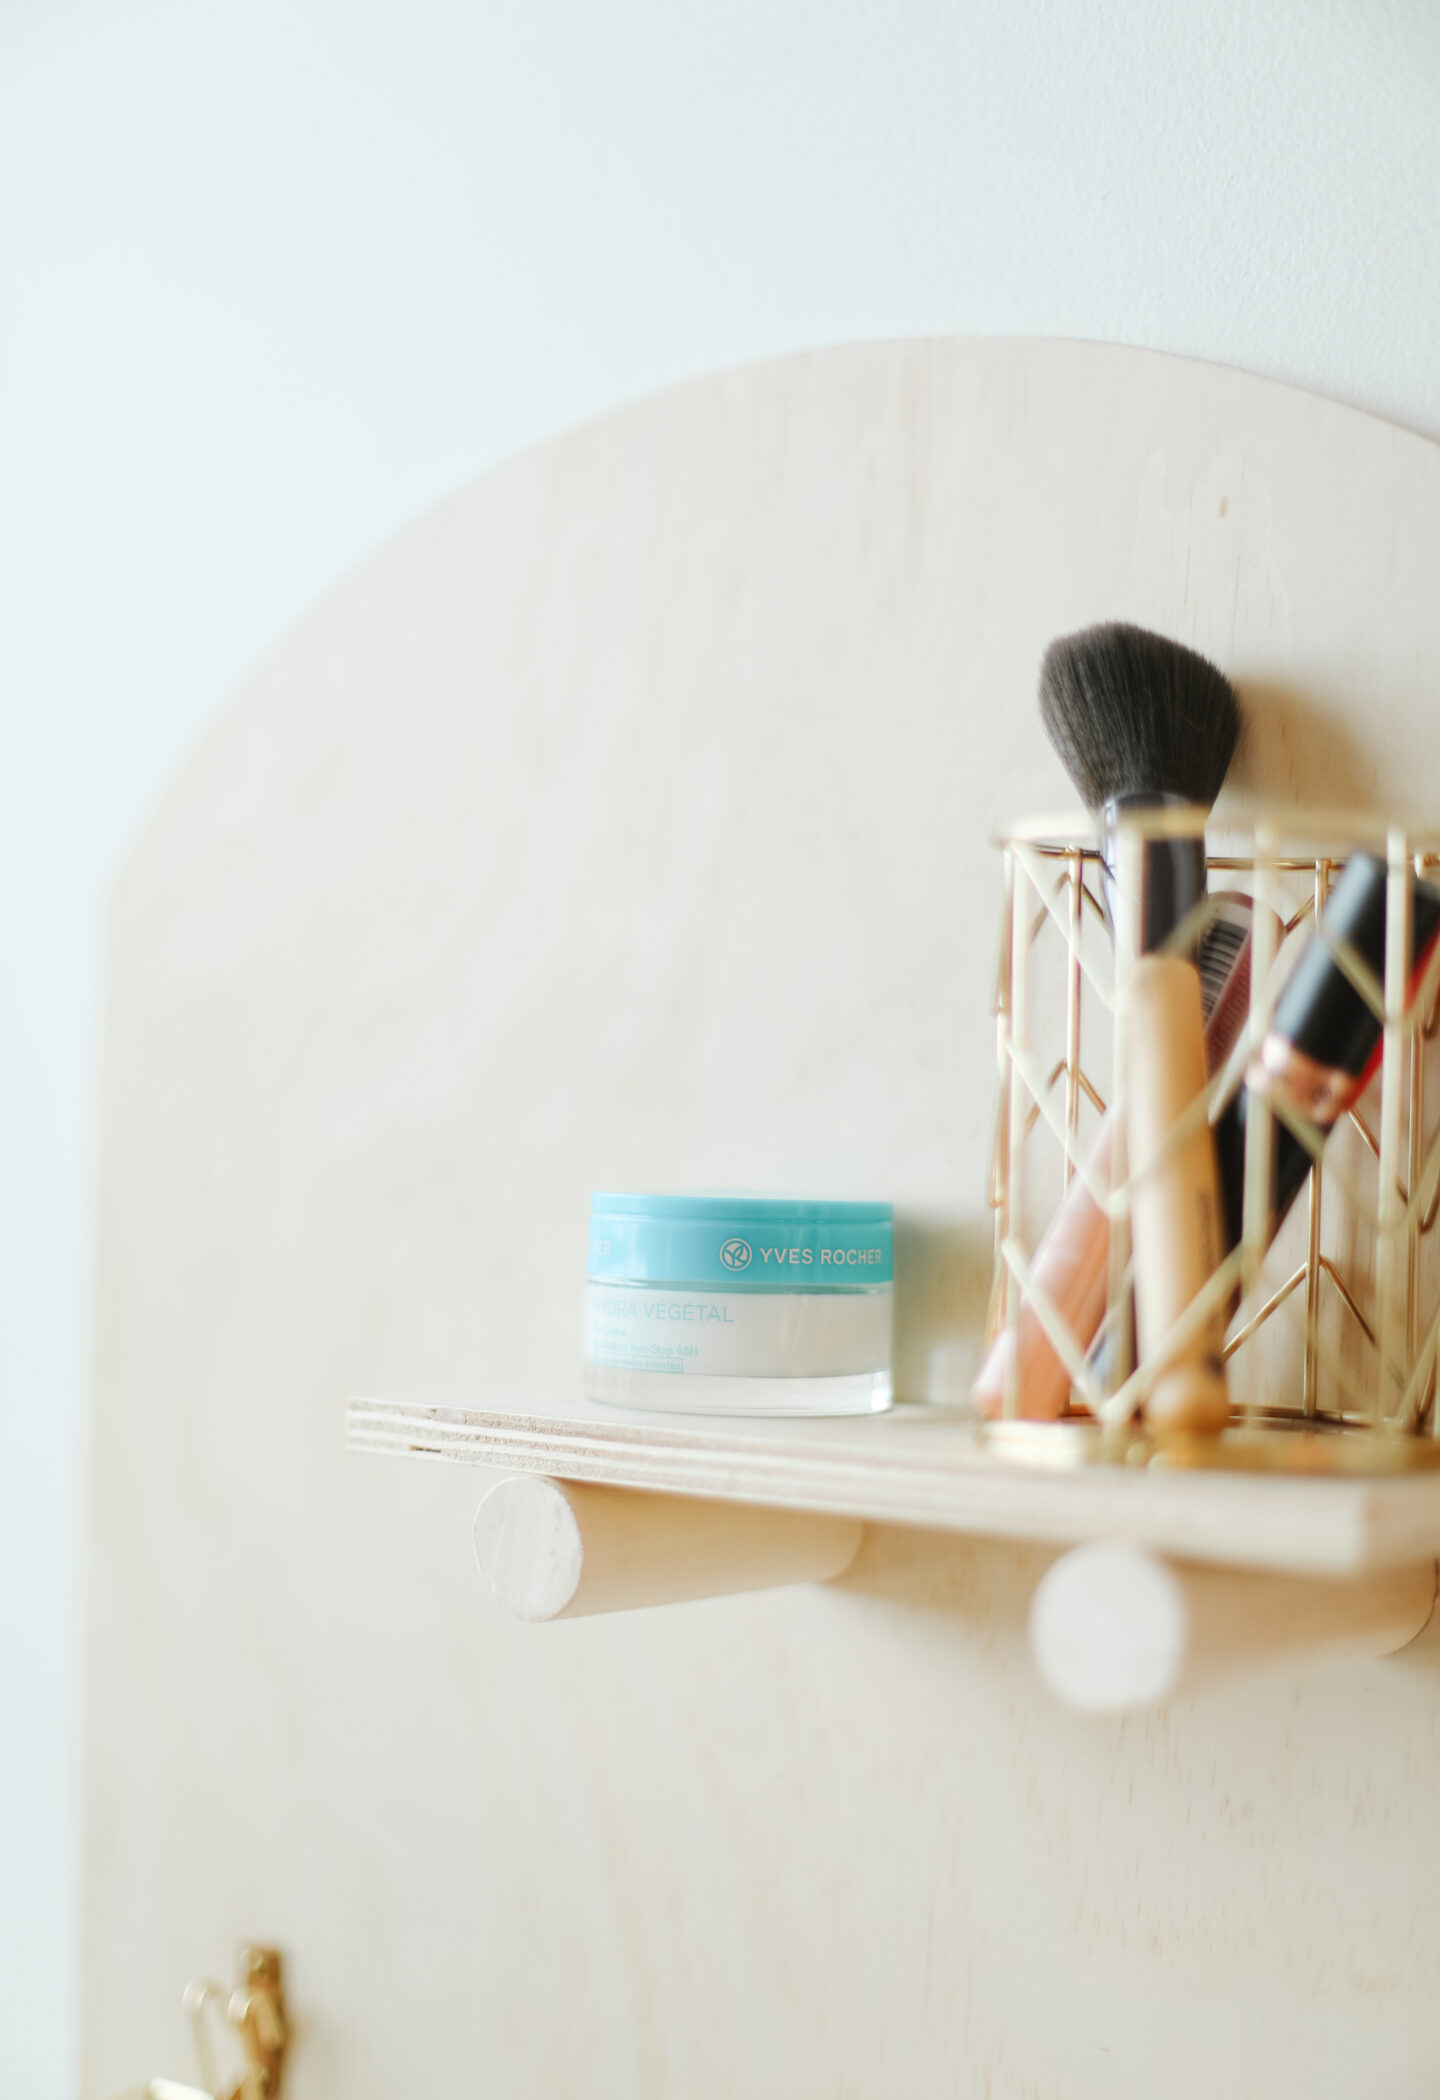 DIY Beauty organizer: How to do it step-by-step